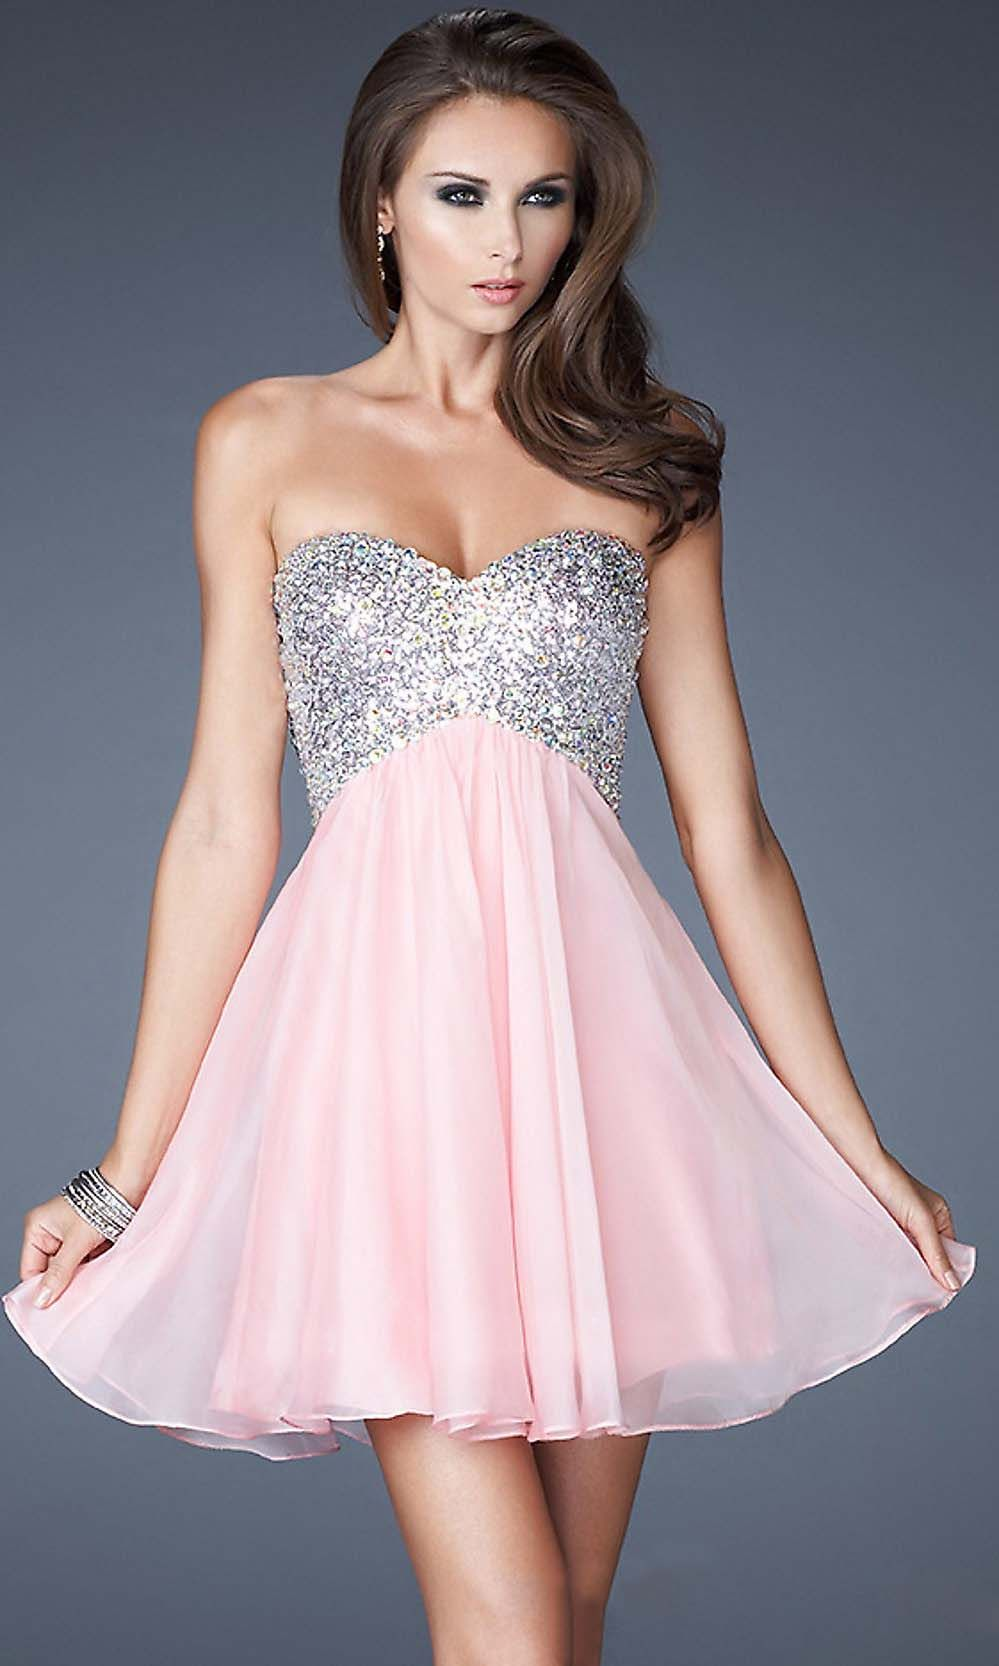 Tips for Choosing Junior Prom Dresses | Dresses | Pinterest | Prom ...